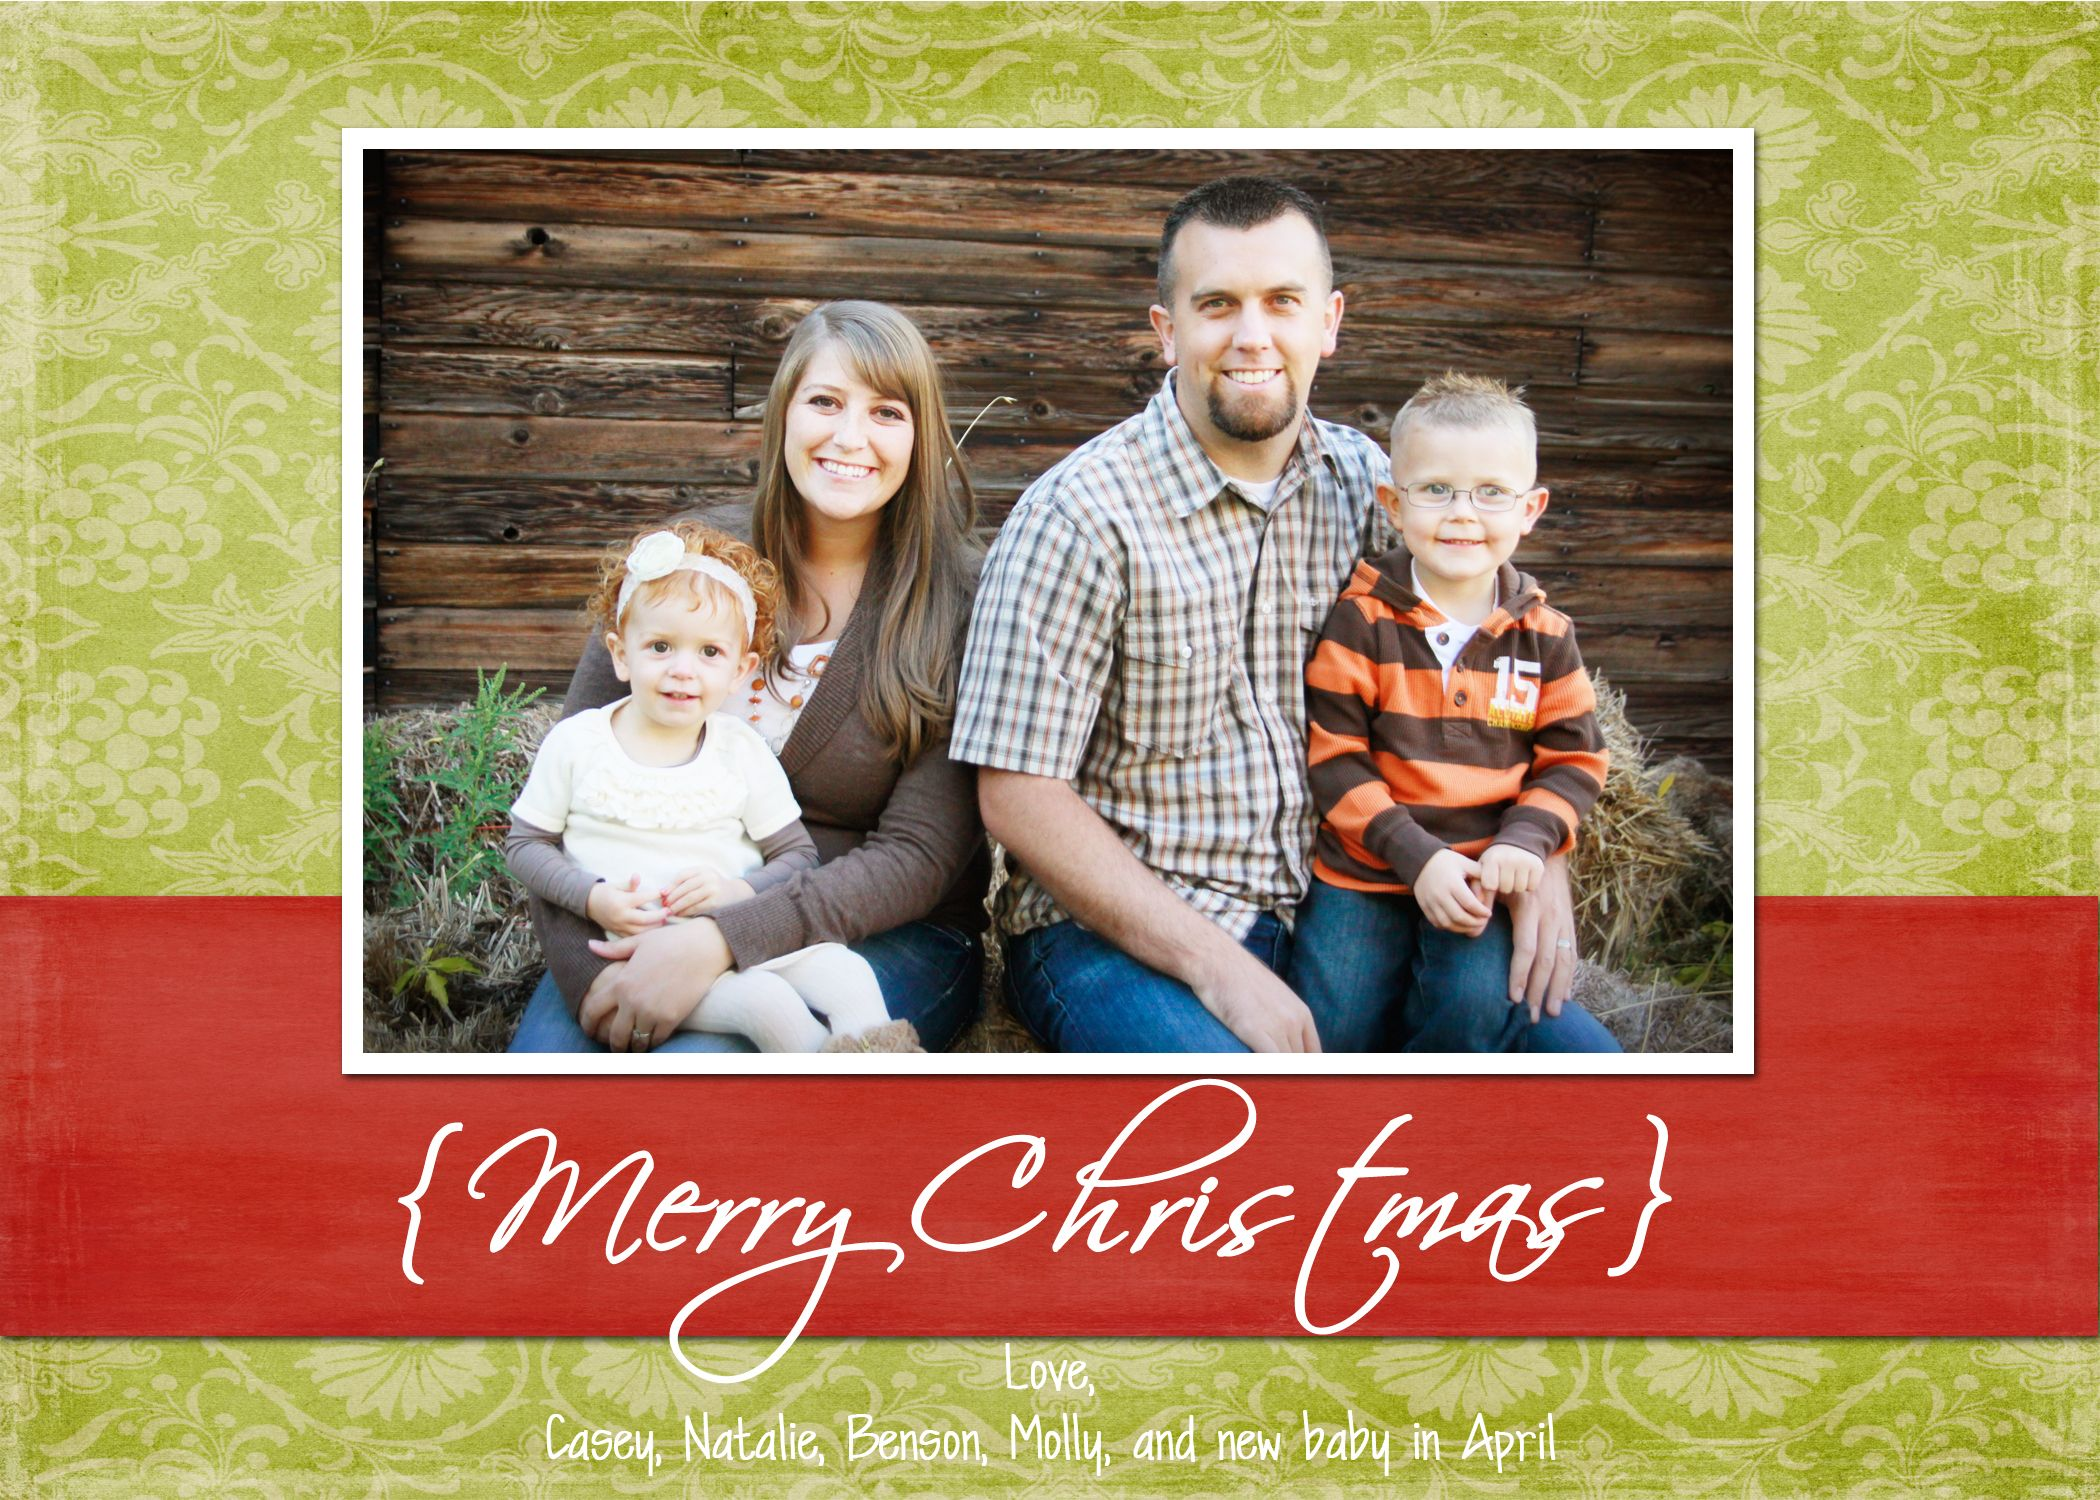 photo christmas card templates free Google Search